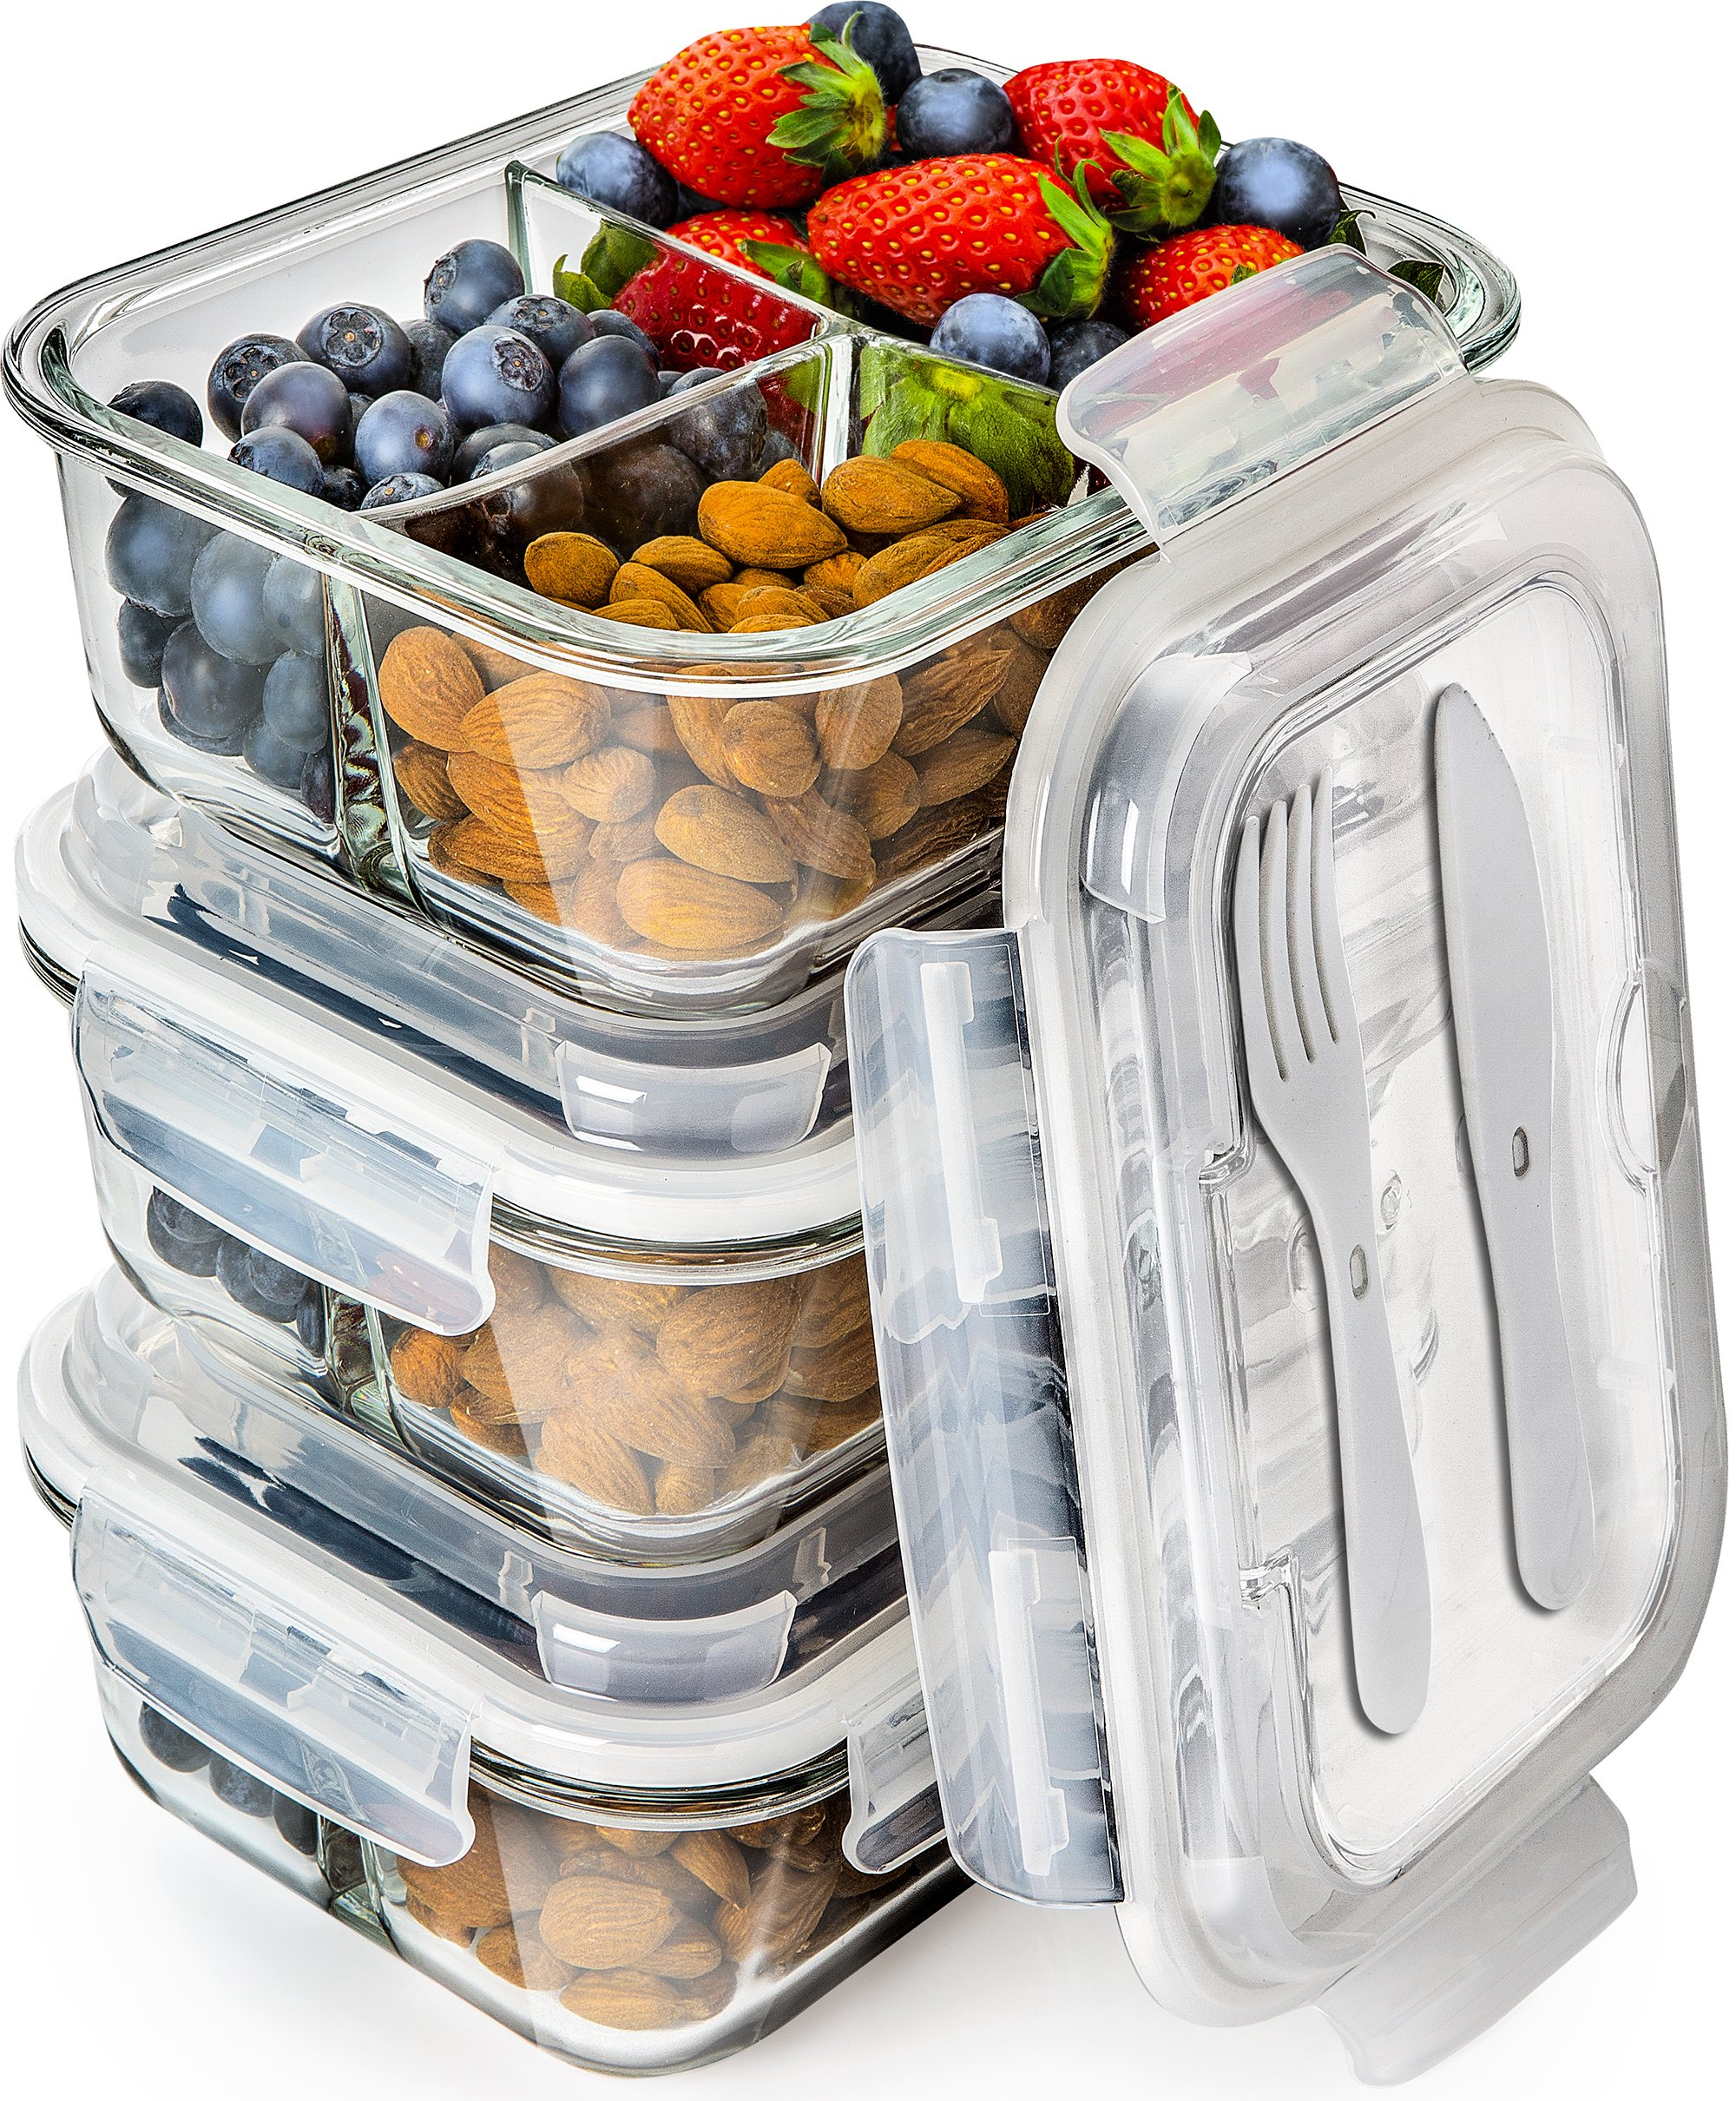 Glass Meal Prep Containers 3 Compartment - Bento Box Containers Glass Food Storage Containers with Lids - Food Containers Food Prep Containers Glass Storage Containers with lids Lunch Containers 3pk by Prep Naturals